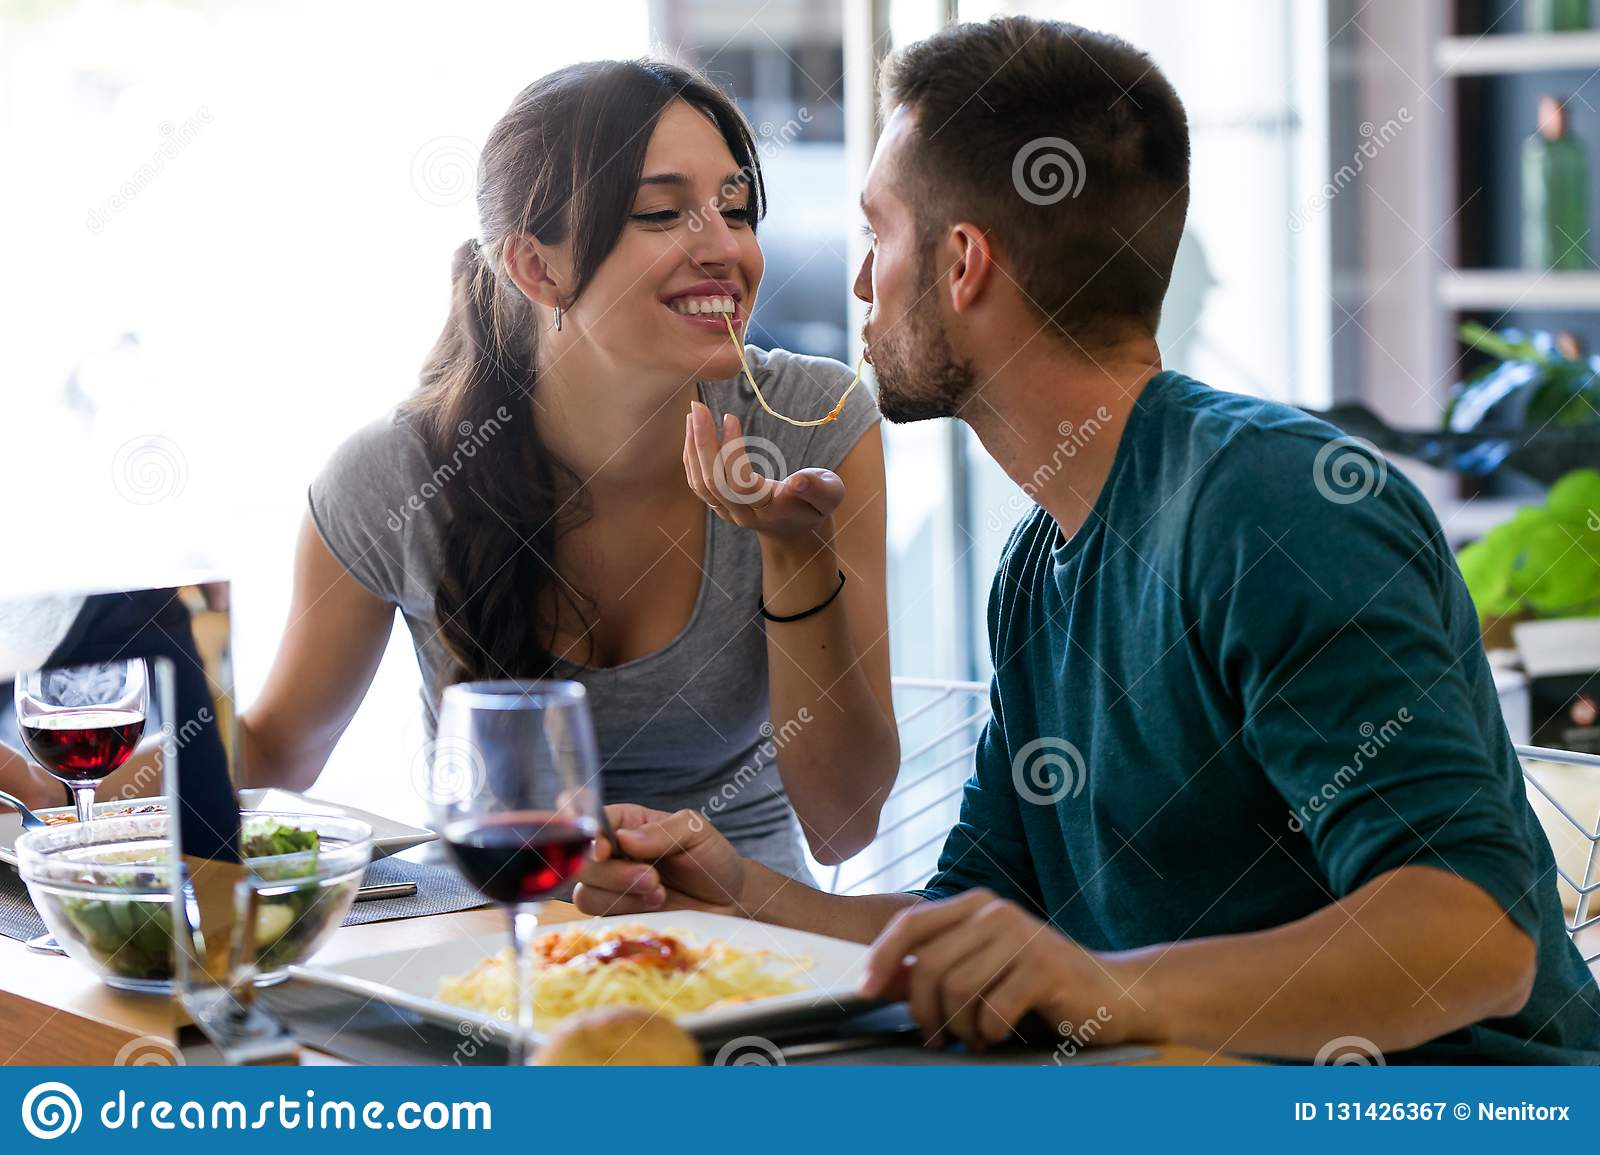 Beautiful young couple sharing single spaghetti getting closer to kissing in the kitchen at home